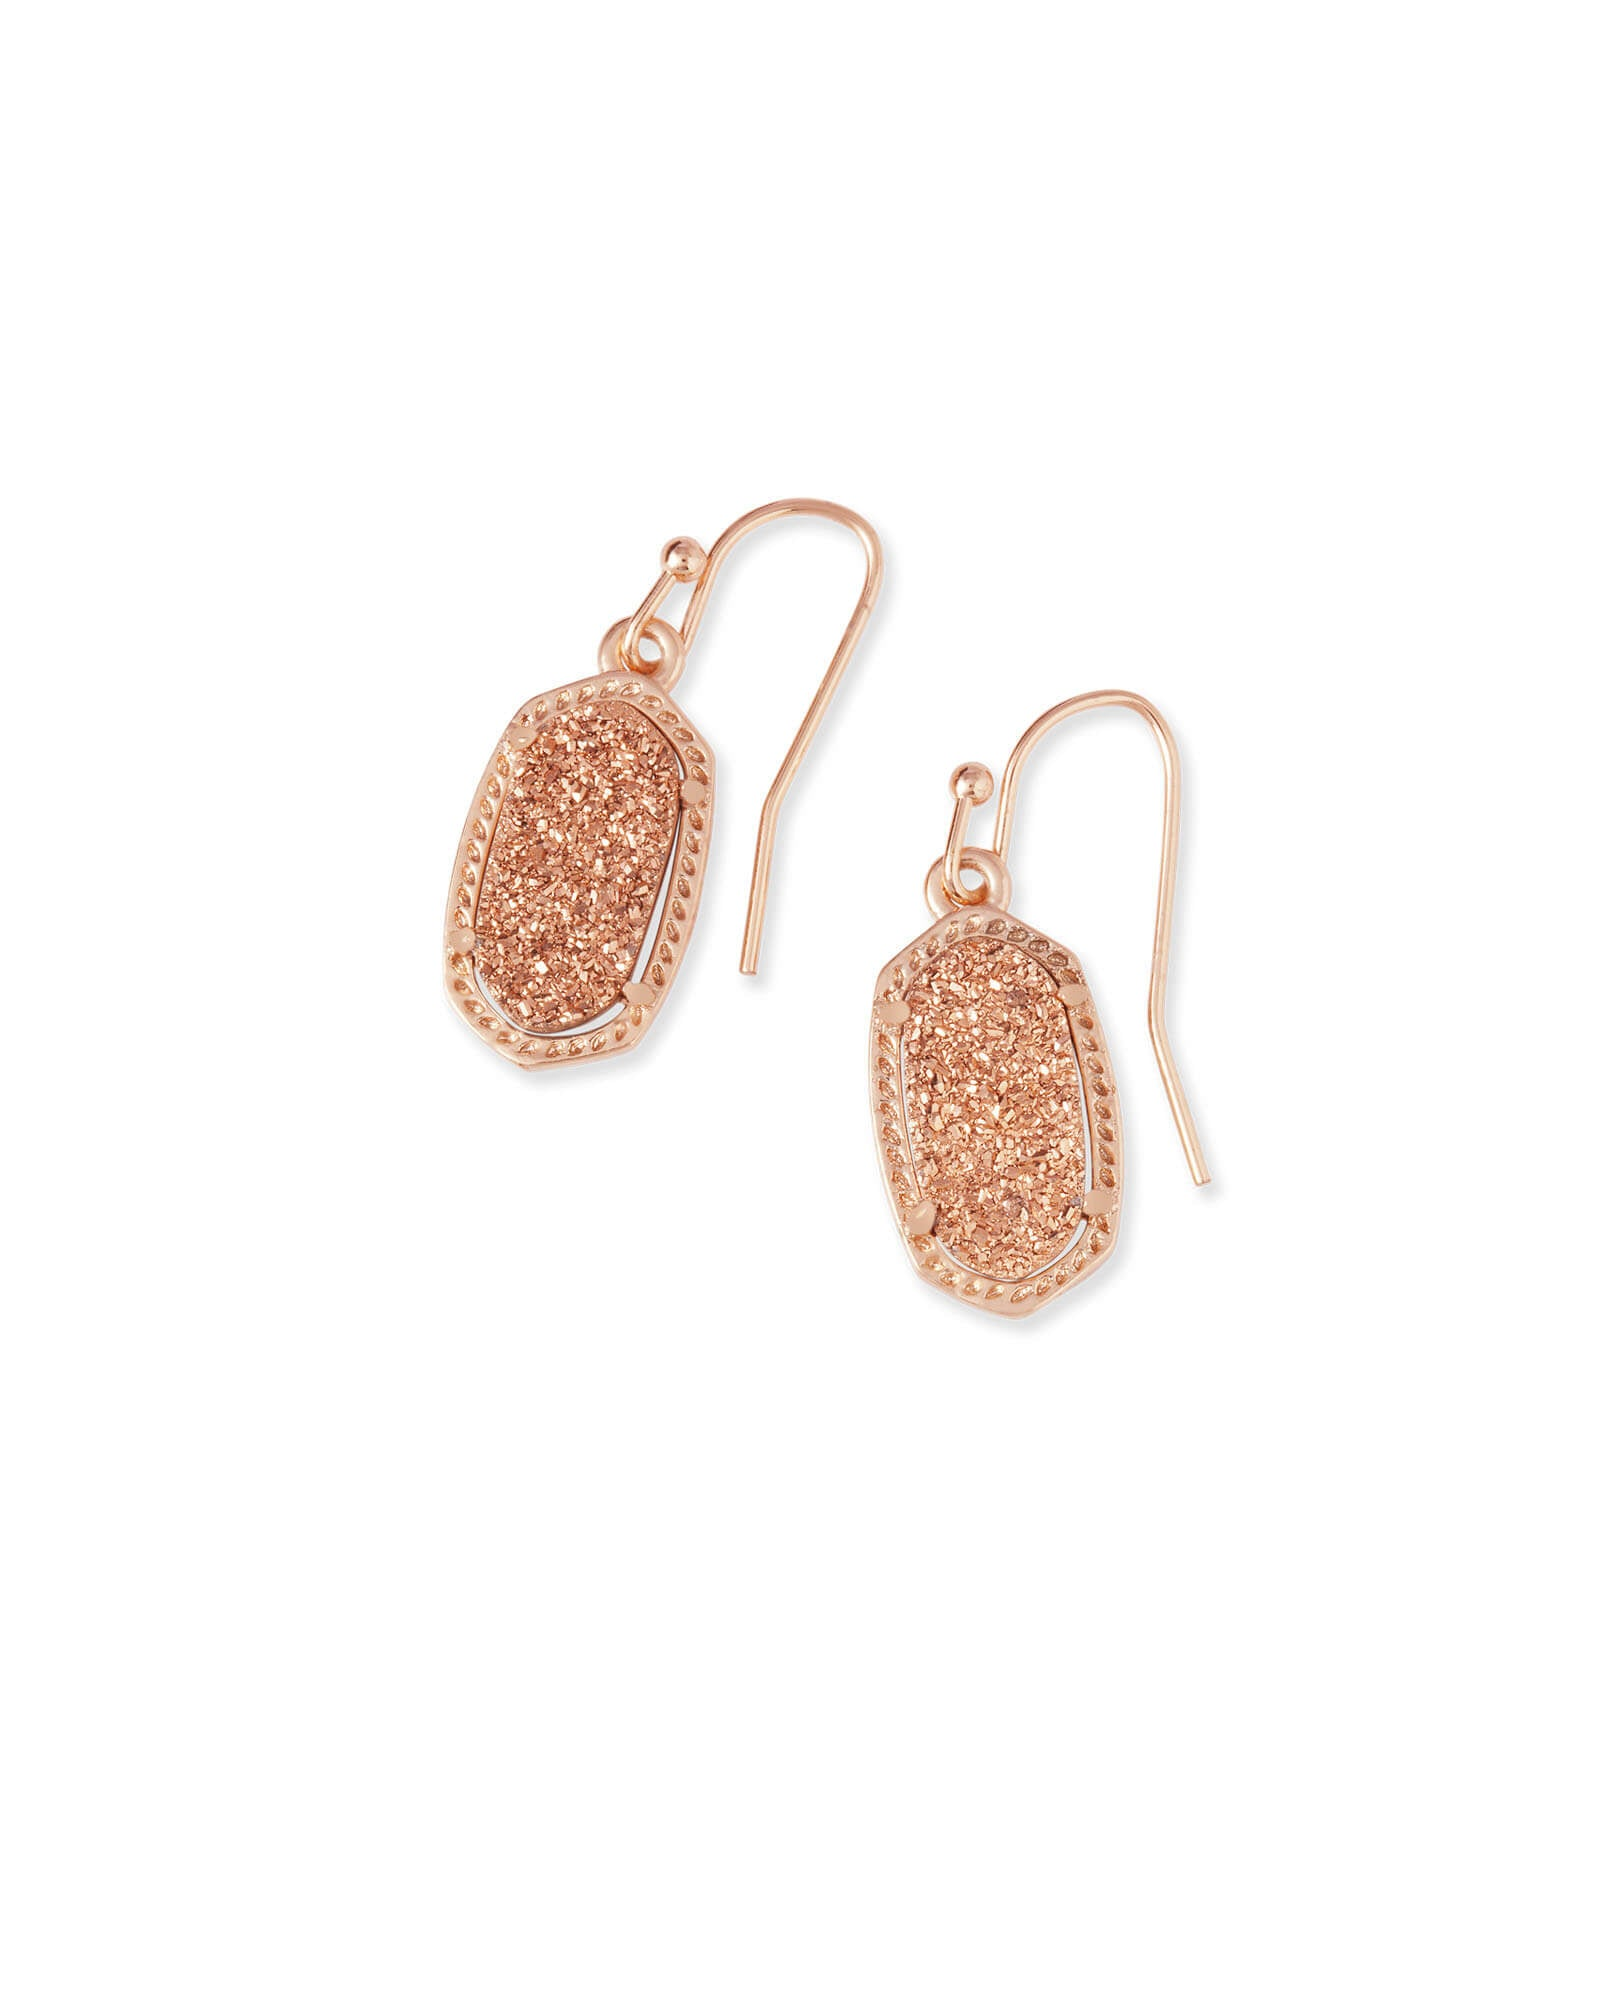 Lee Earring Rose Gold Drusy